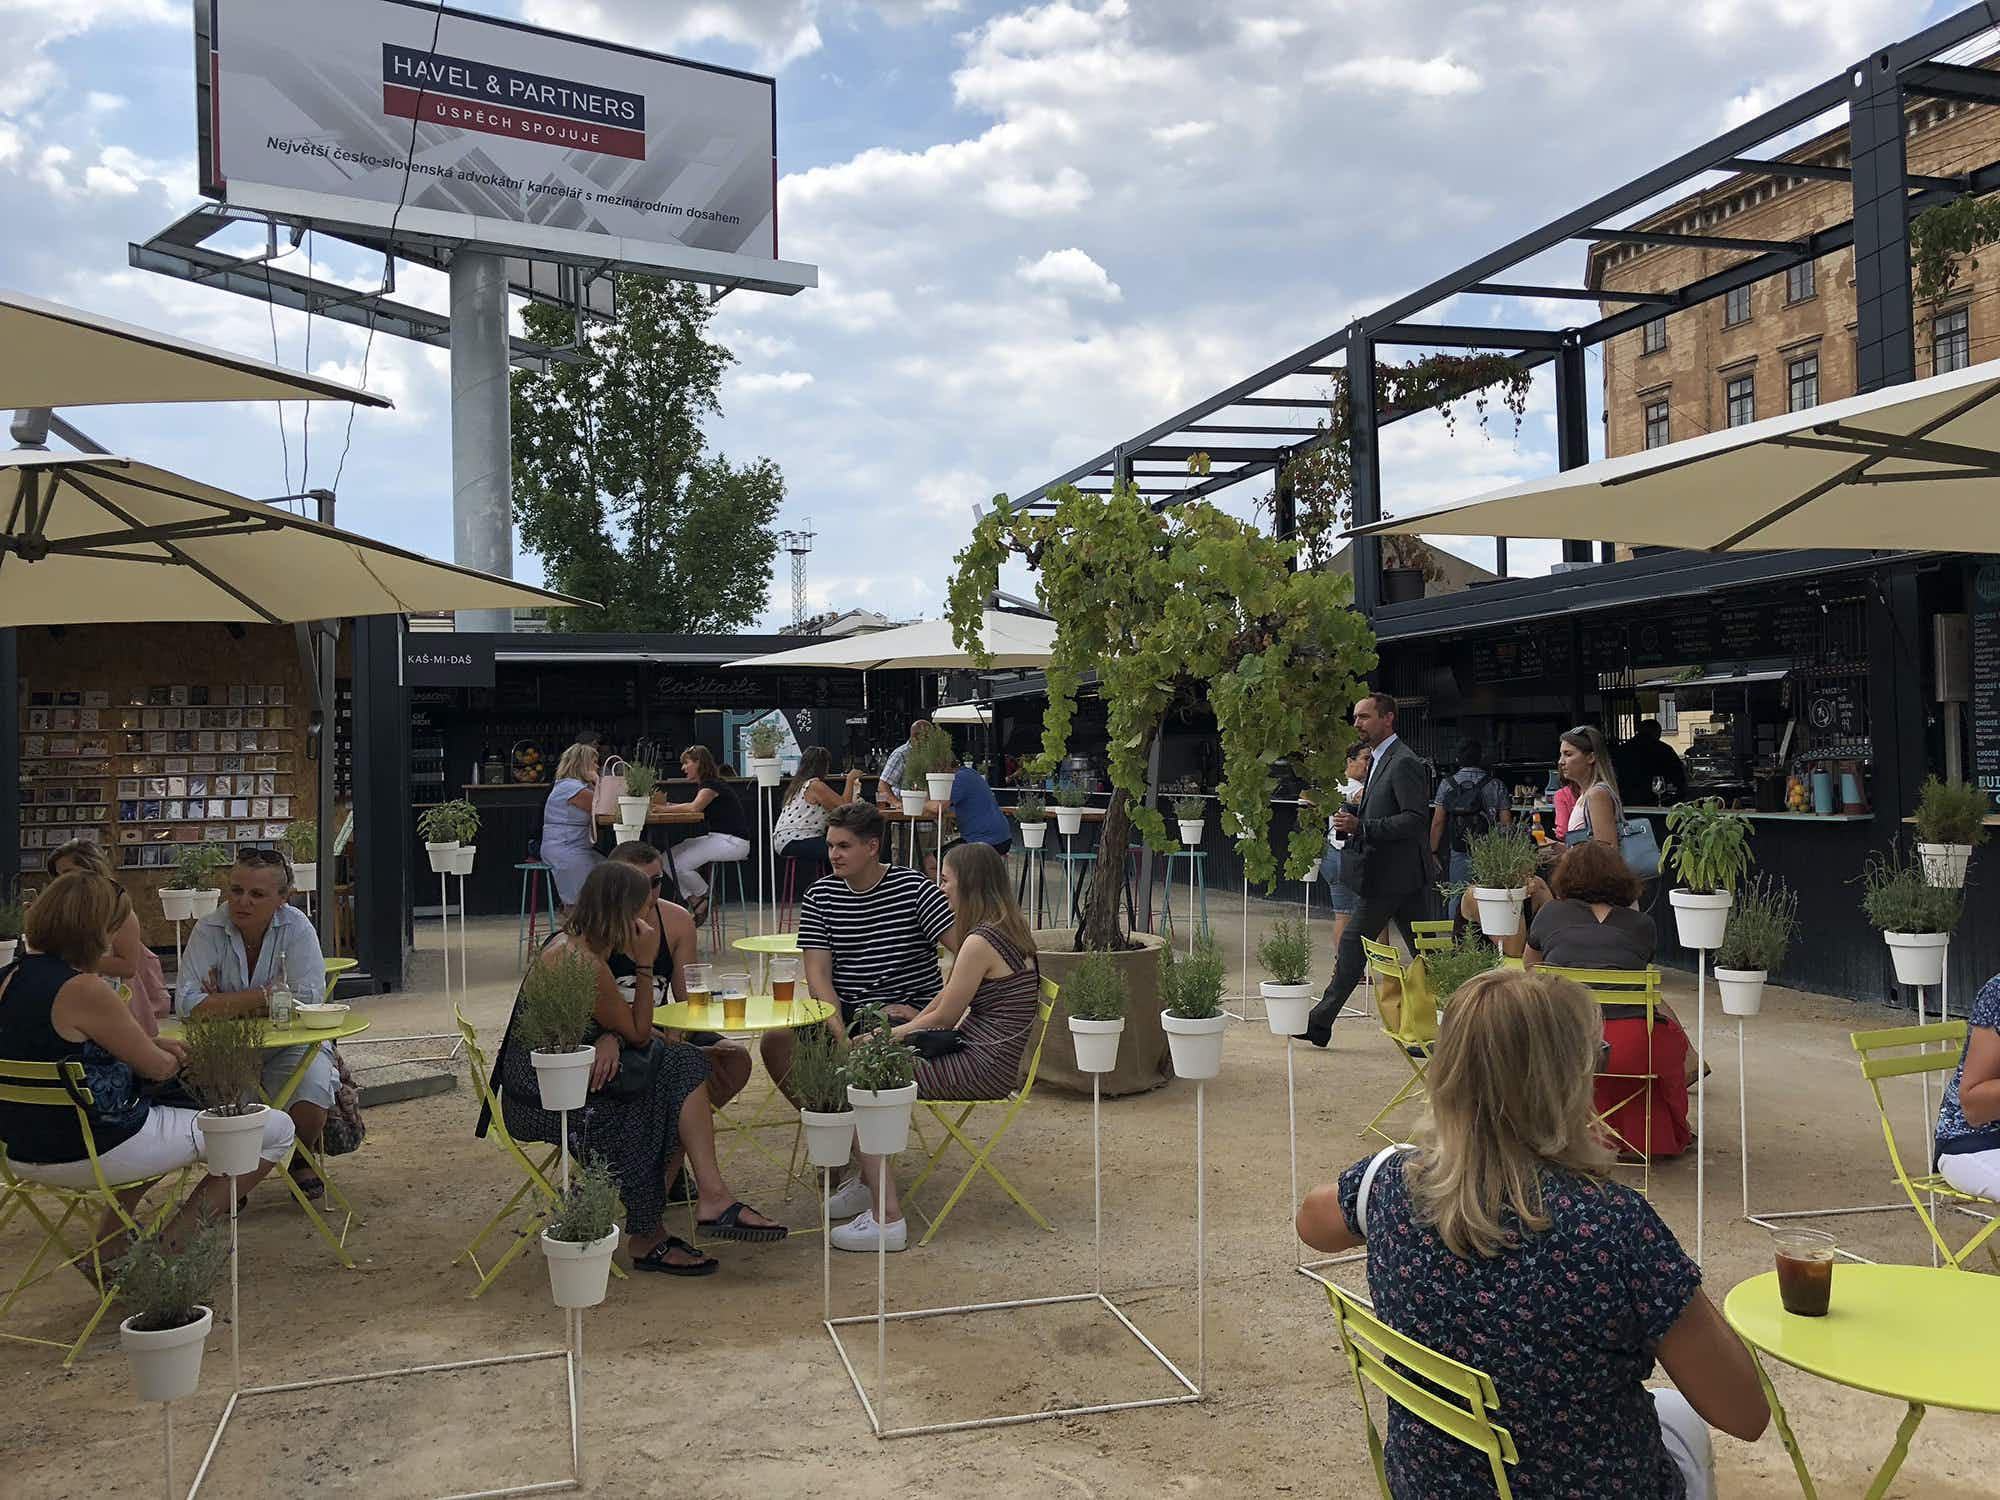 Prague revives a neglected area with a pop-up market made from shipping containers